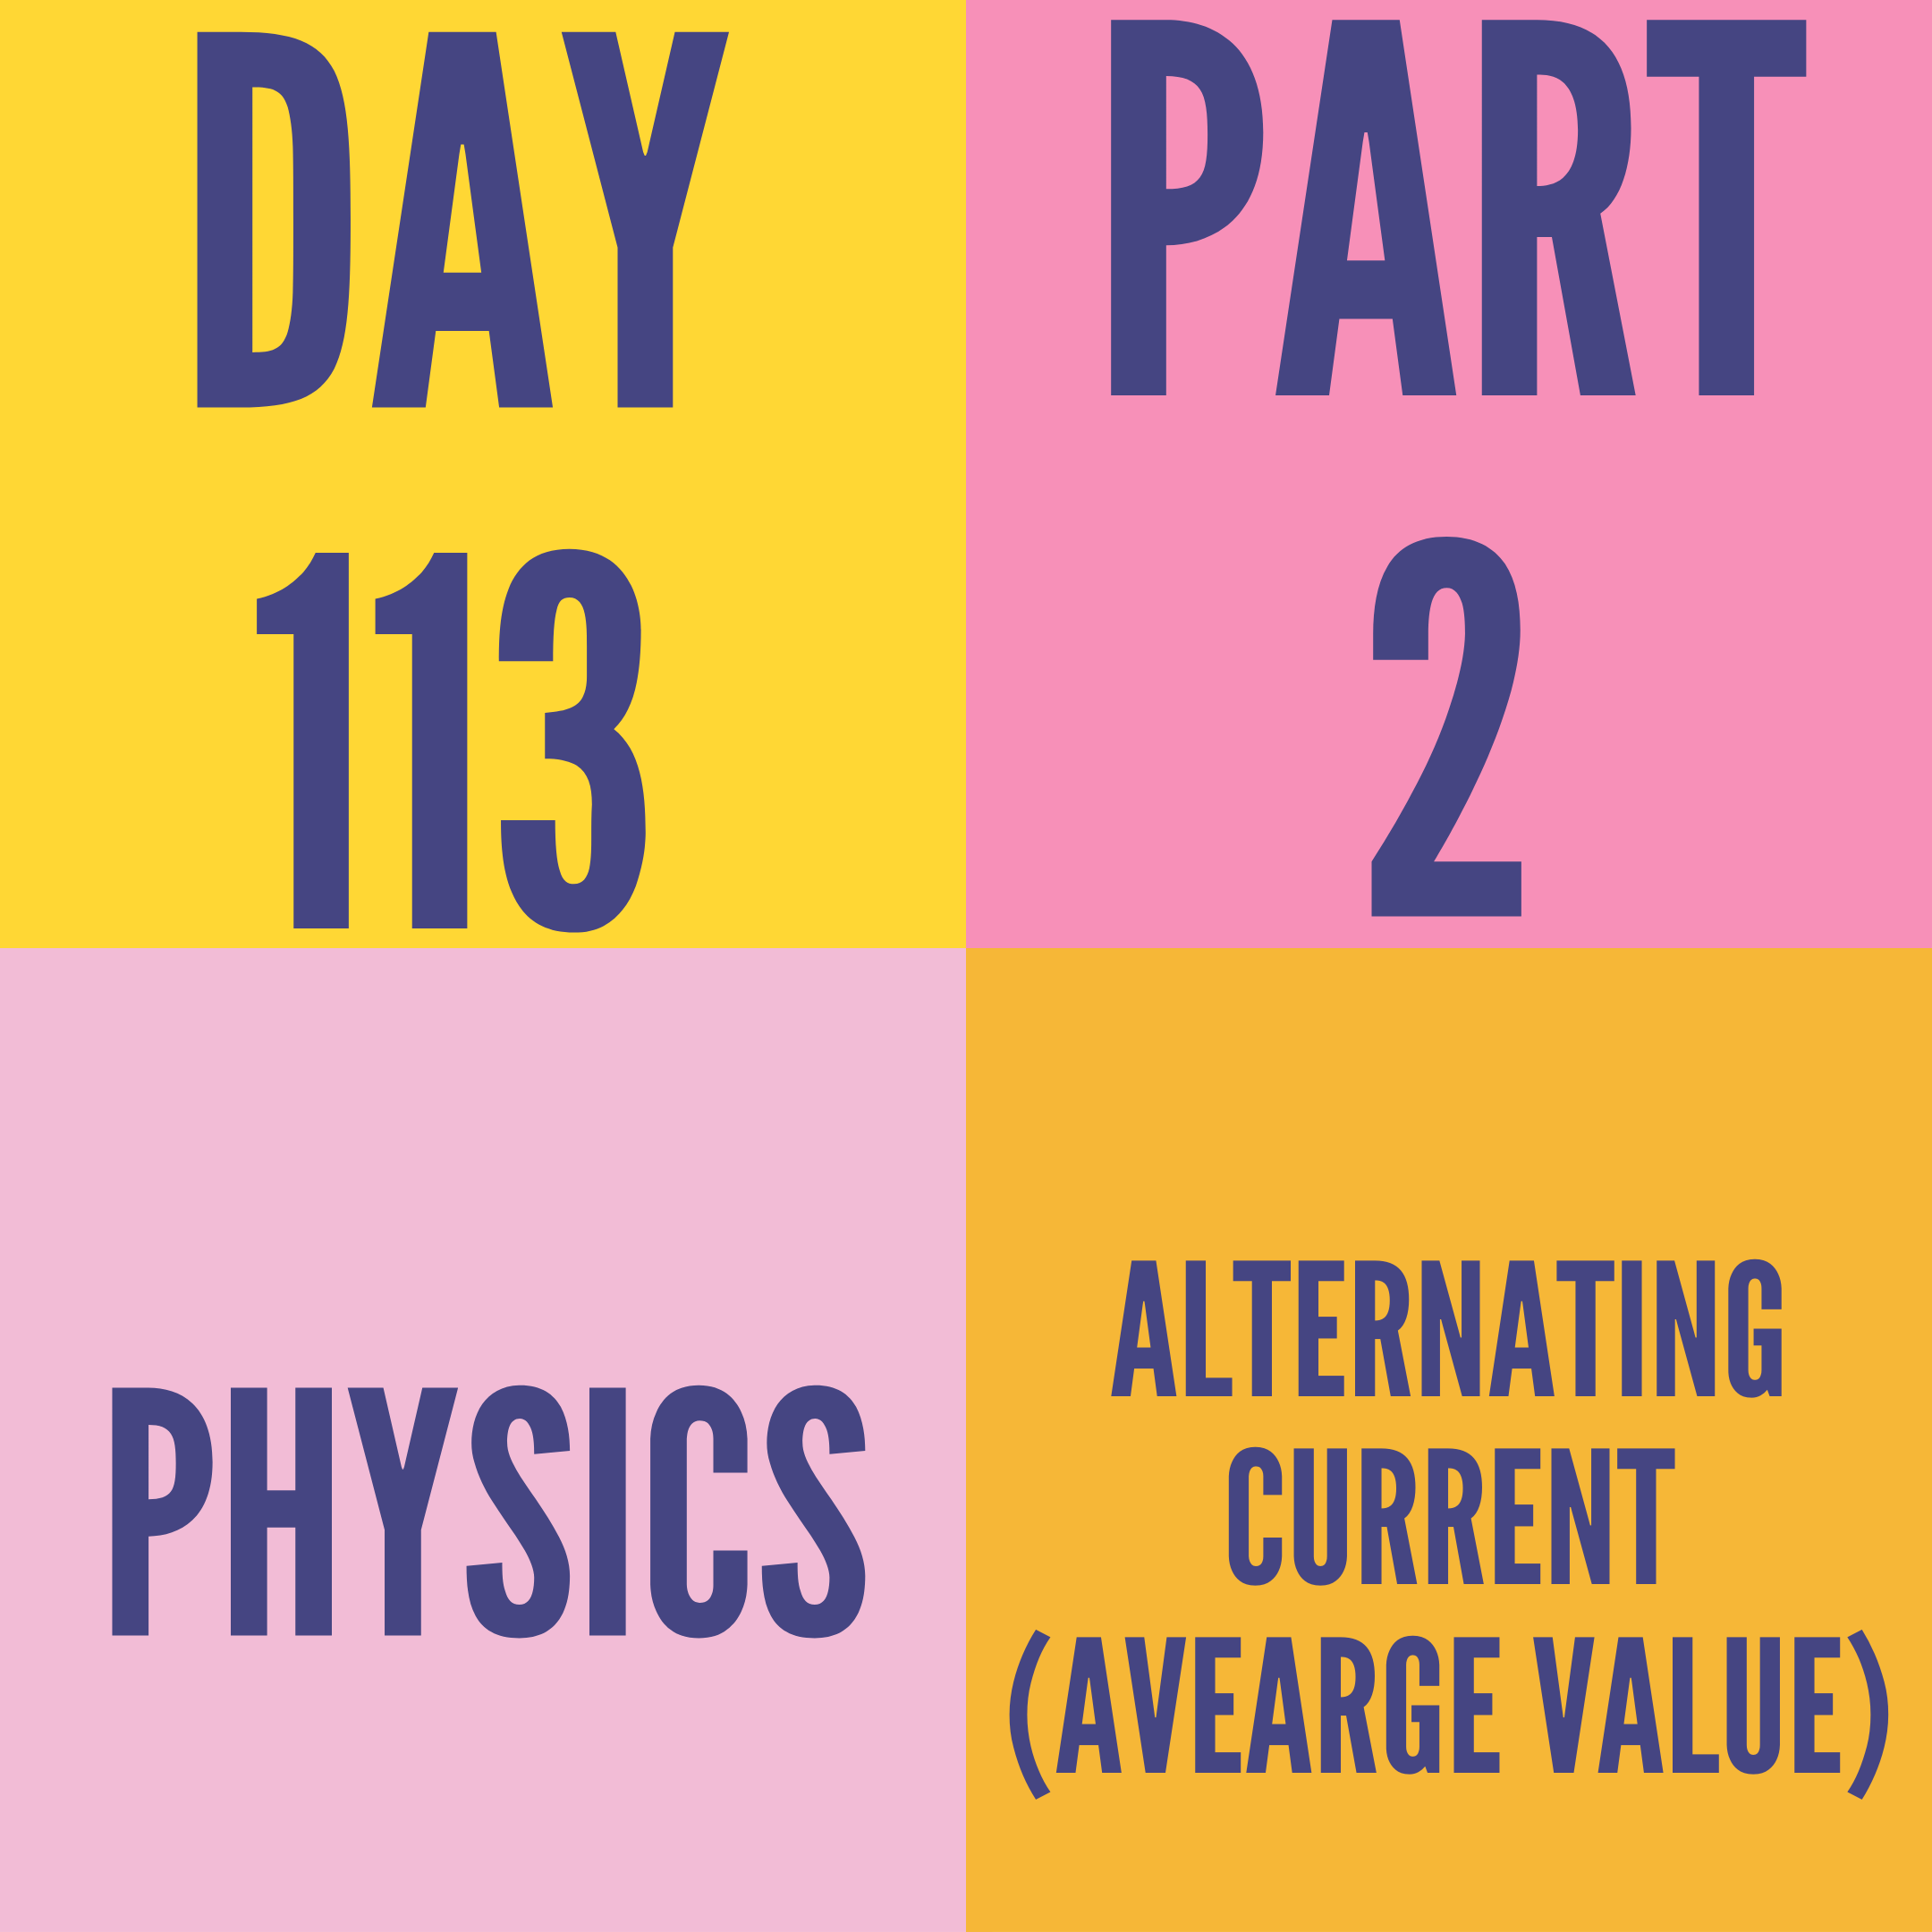 DAY-113 PART-2 ALTERNATING CURRENT (AVEARGE VALUE)